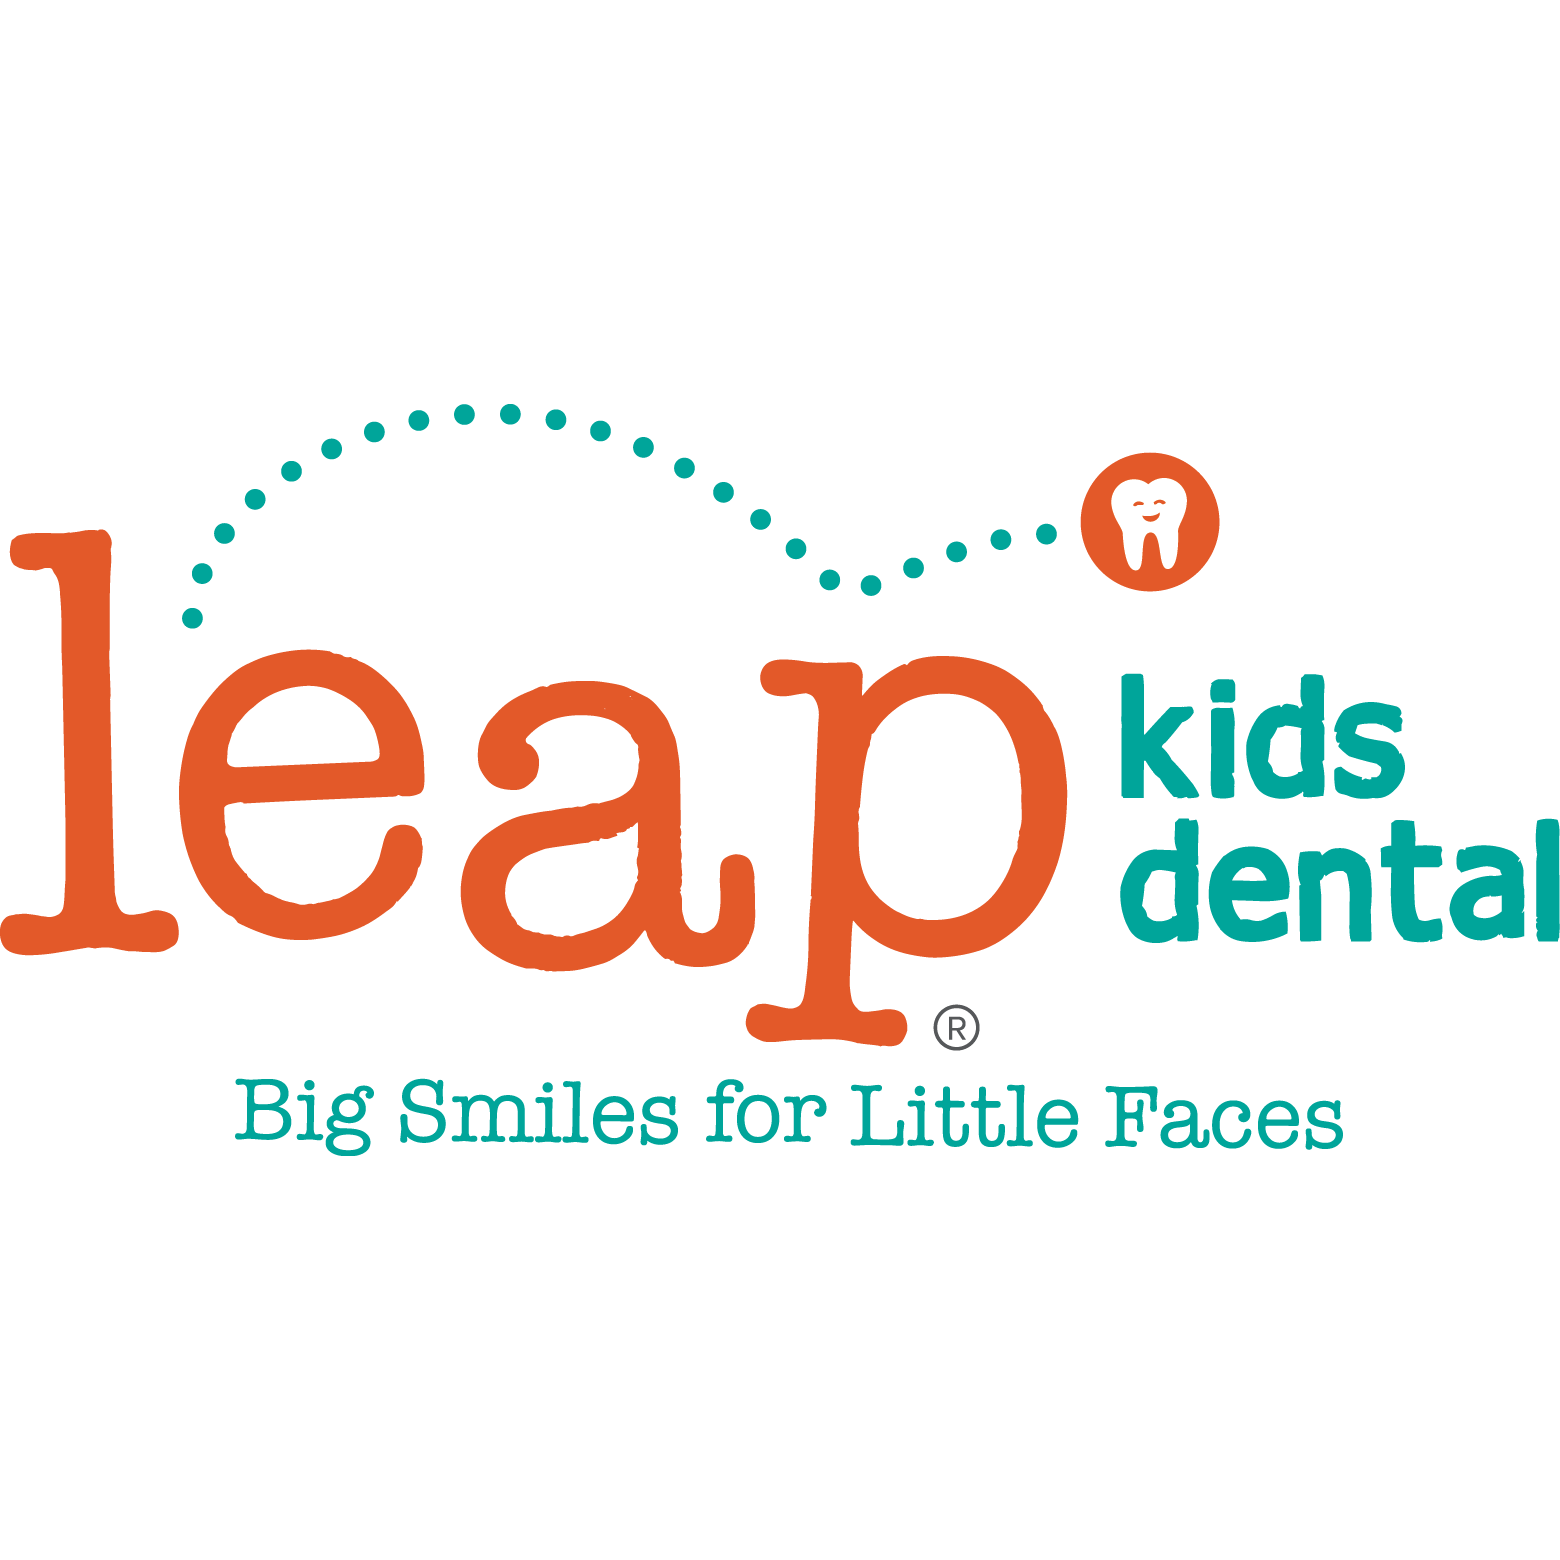 Leap Kids Dental